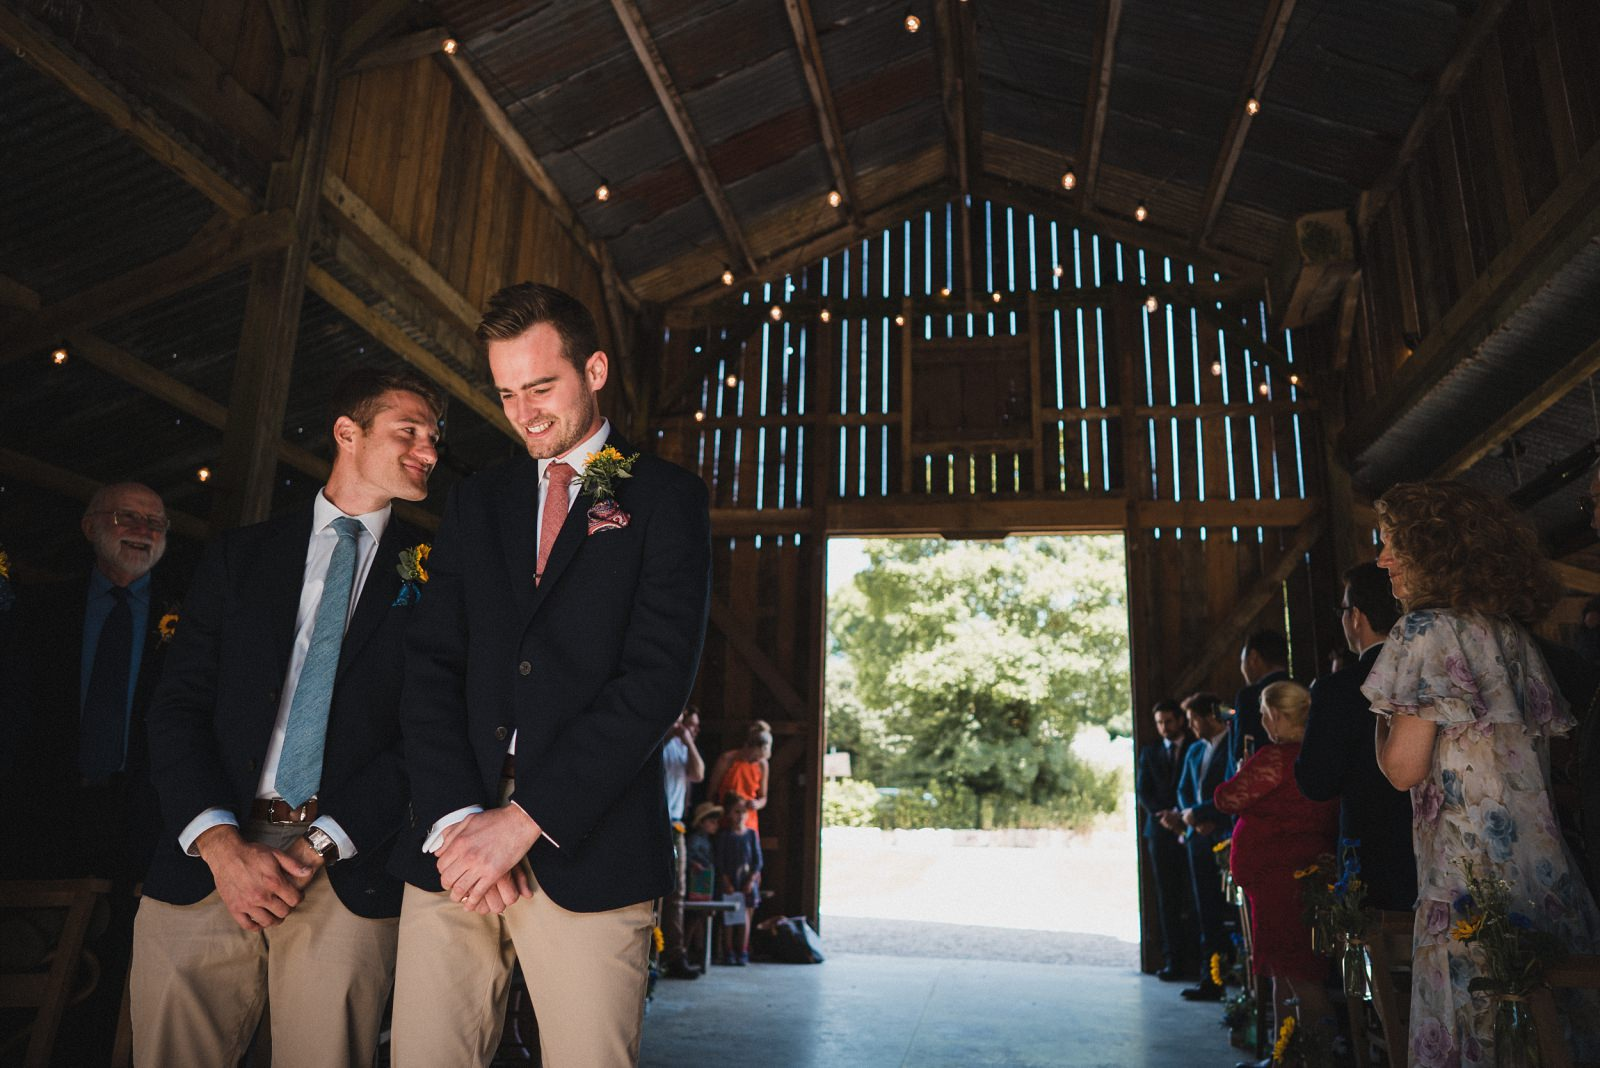 The groom nervously waiting for his bride to walk in to their wedding ceremony at Nancarrow Barn.